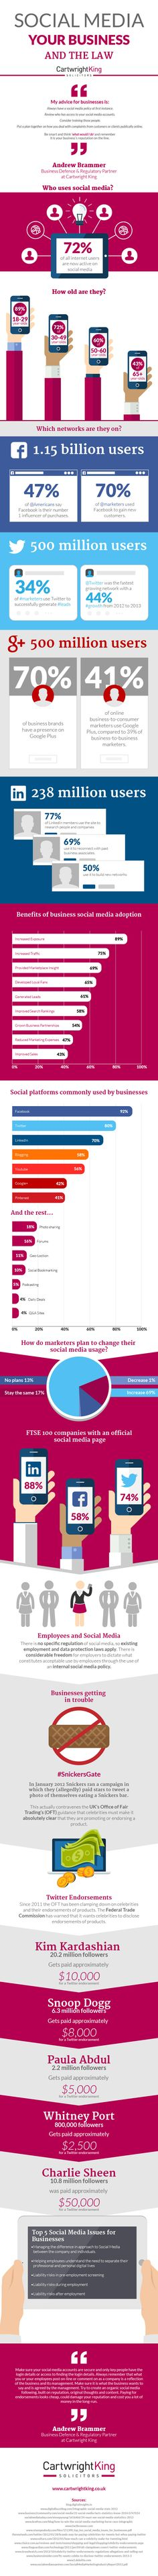 Law and #SocialMedia: What #Businesses Should Know - #infographic